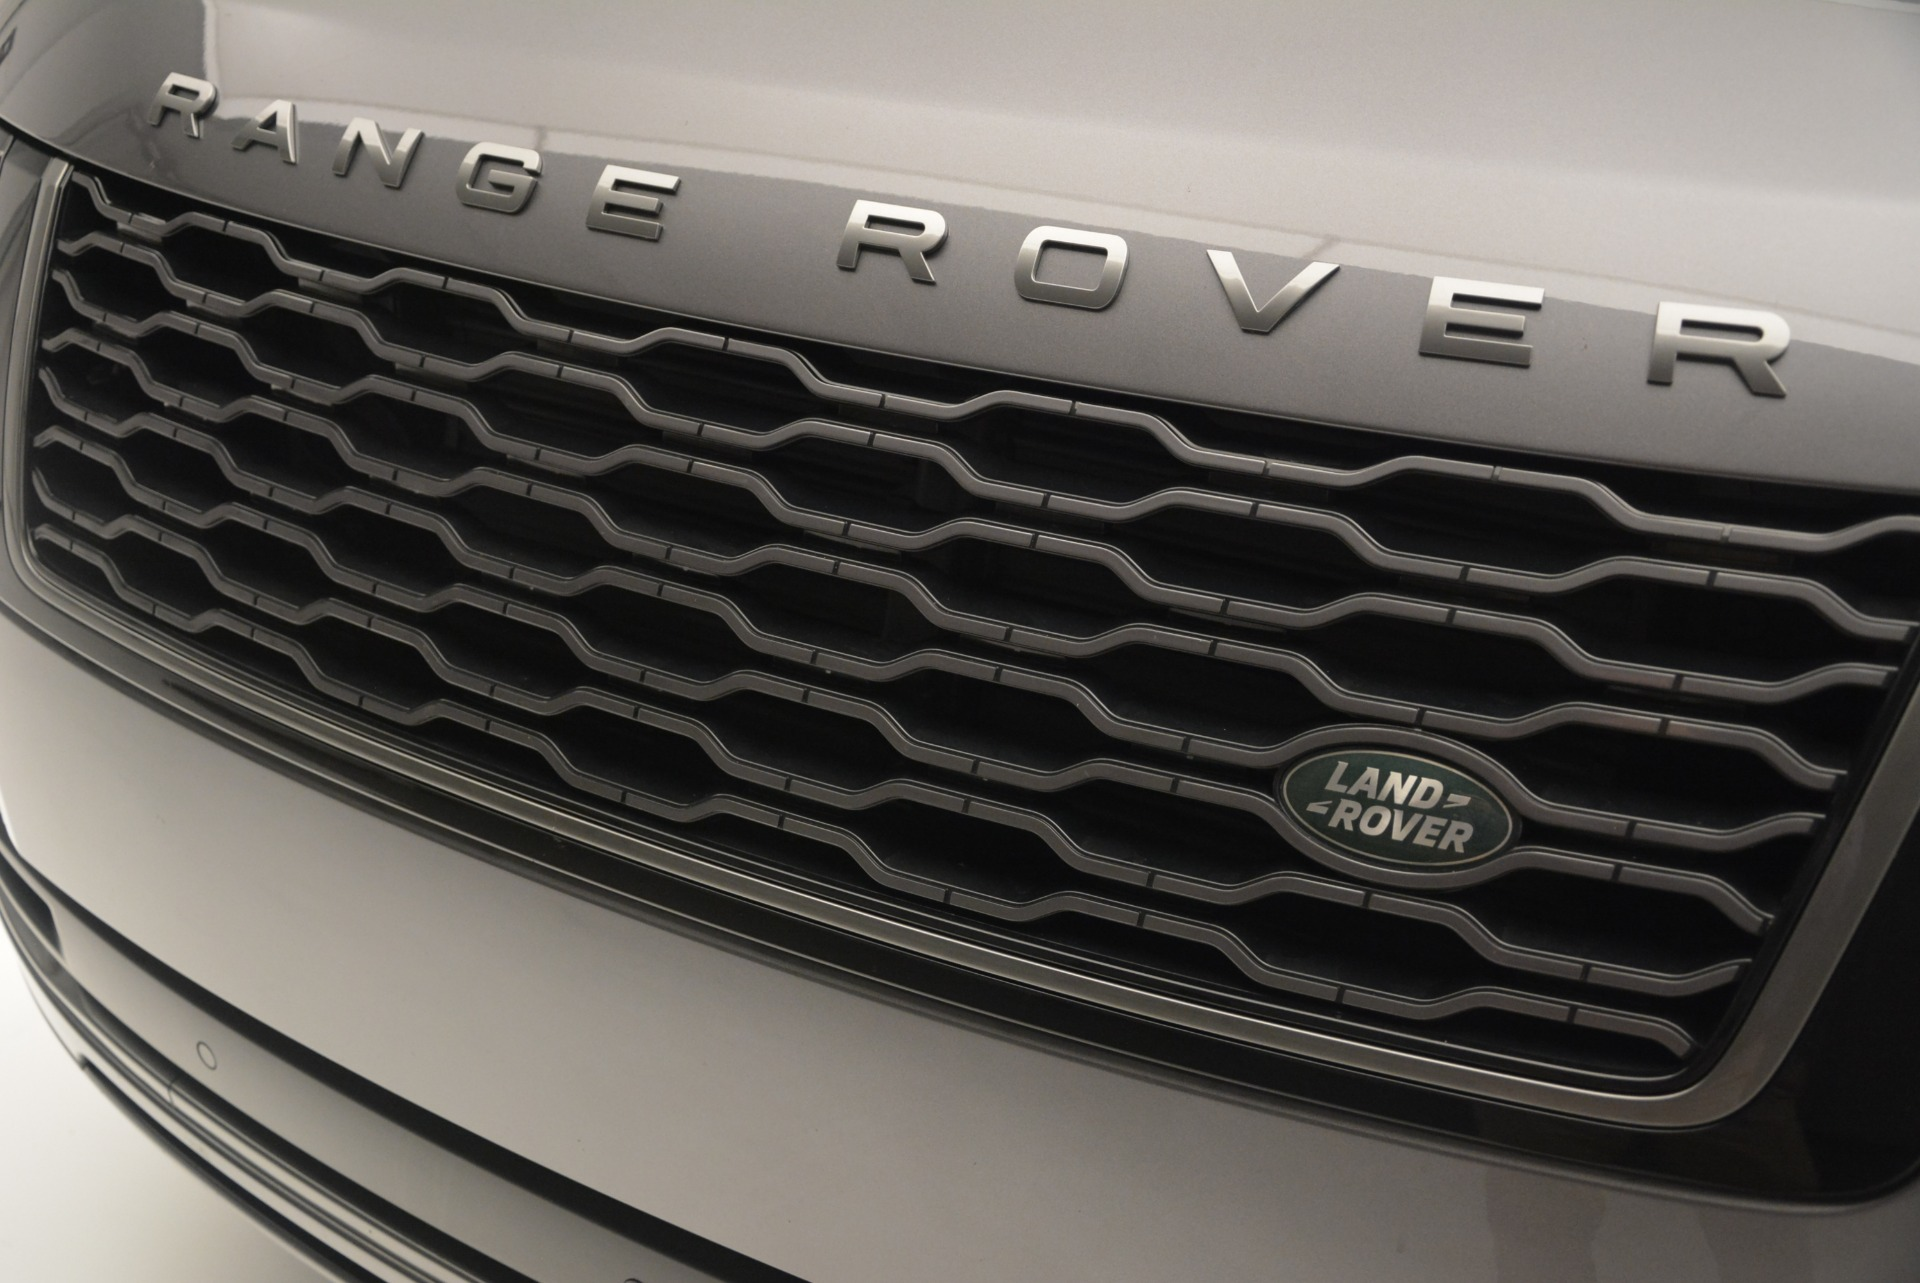 Used 2018 Land Rover Range Rover Supercharged LWB For Sale In Westport, CT 2291_p13